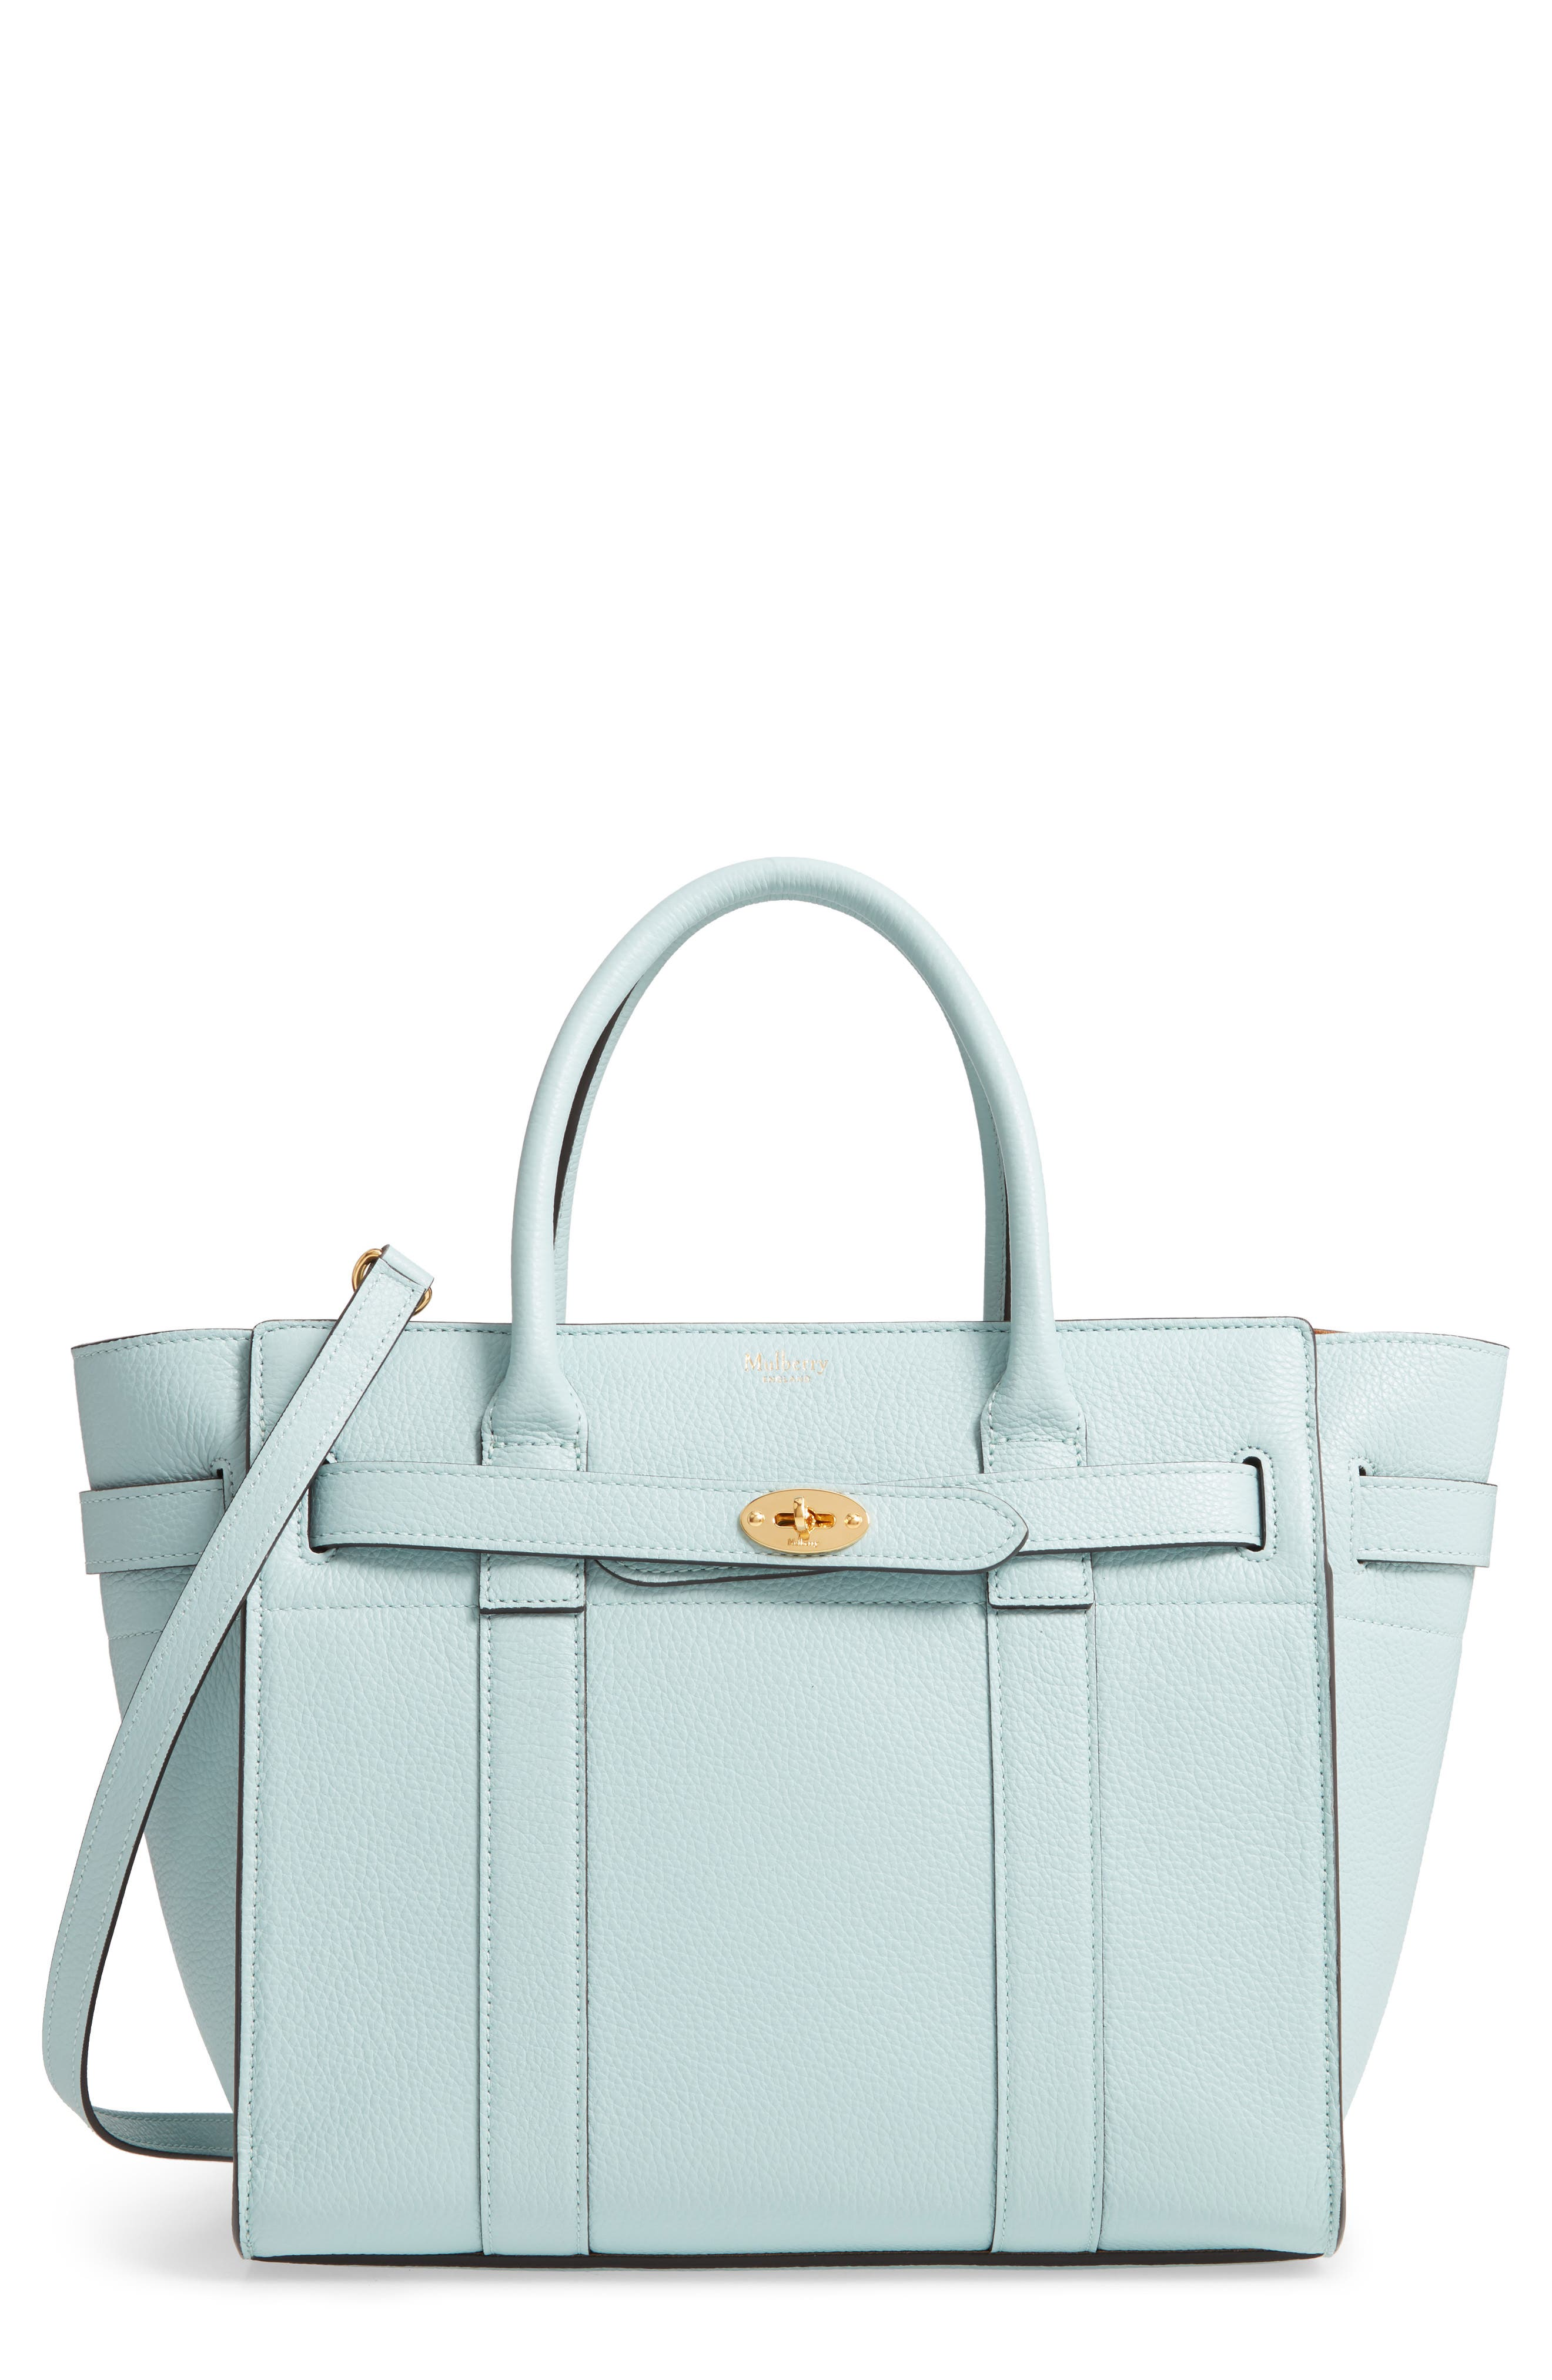 MULBERRY Small Zip Bayswater Classic Leather Tote - Blue in Light Antique Blue